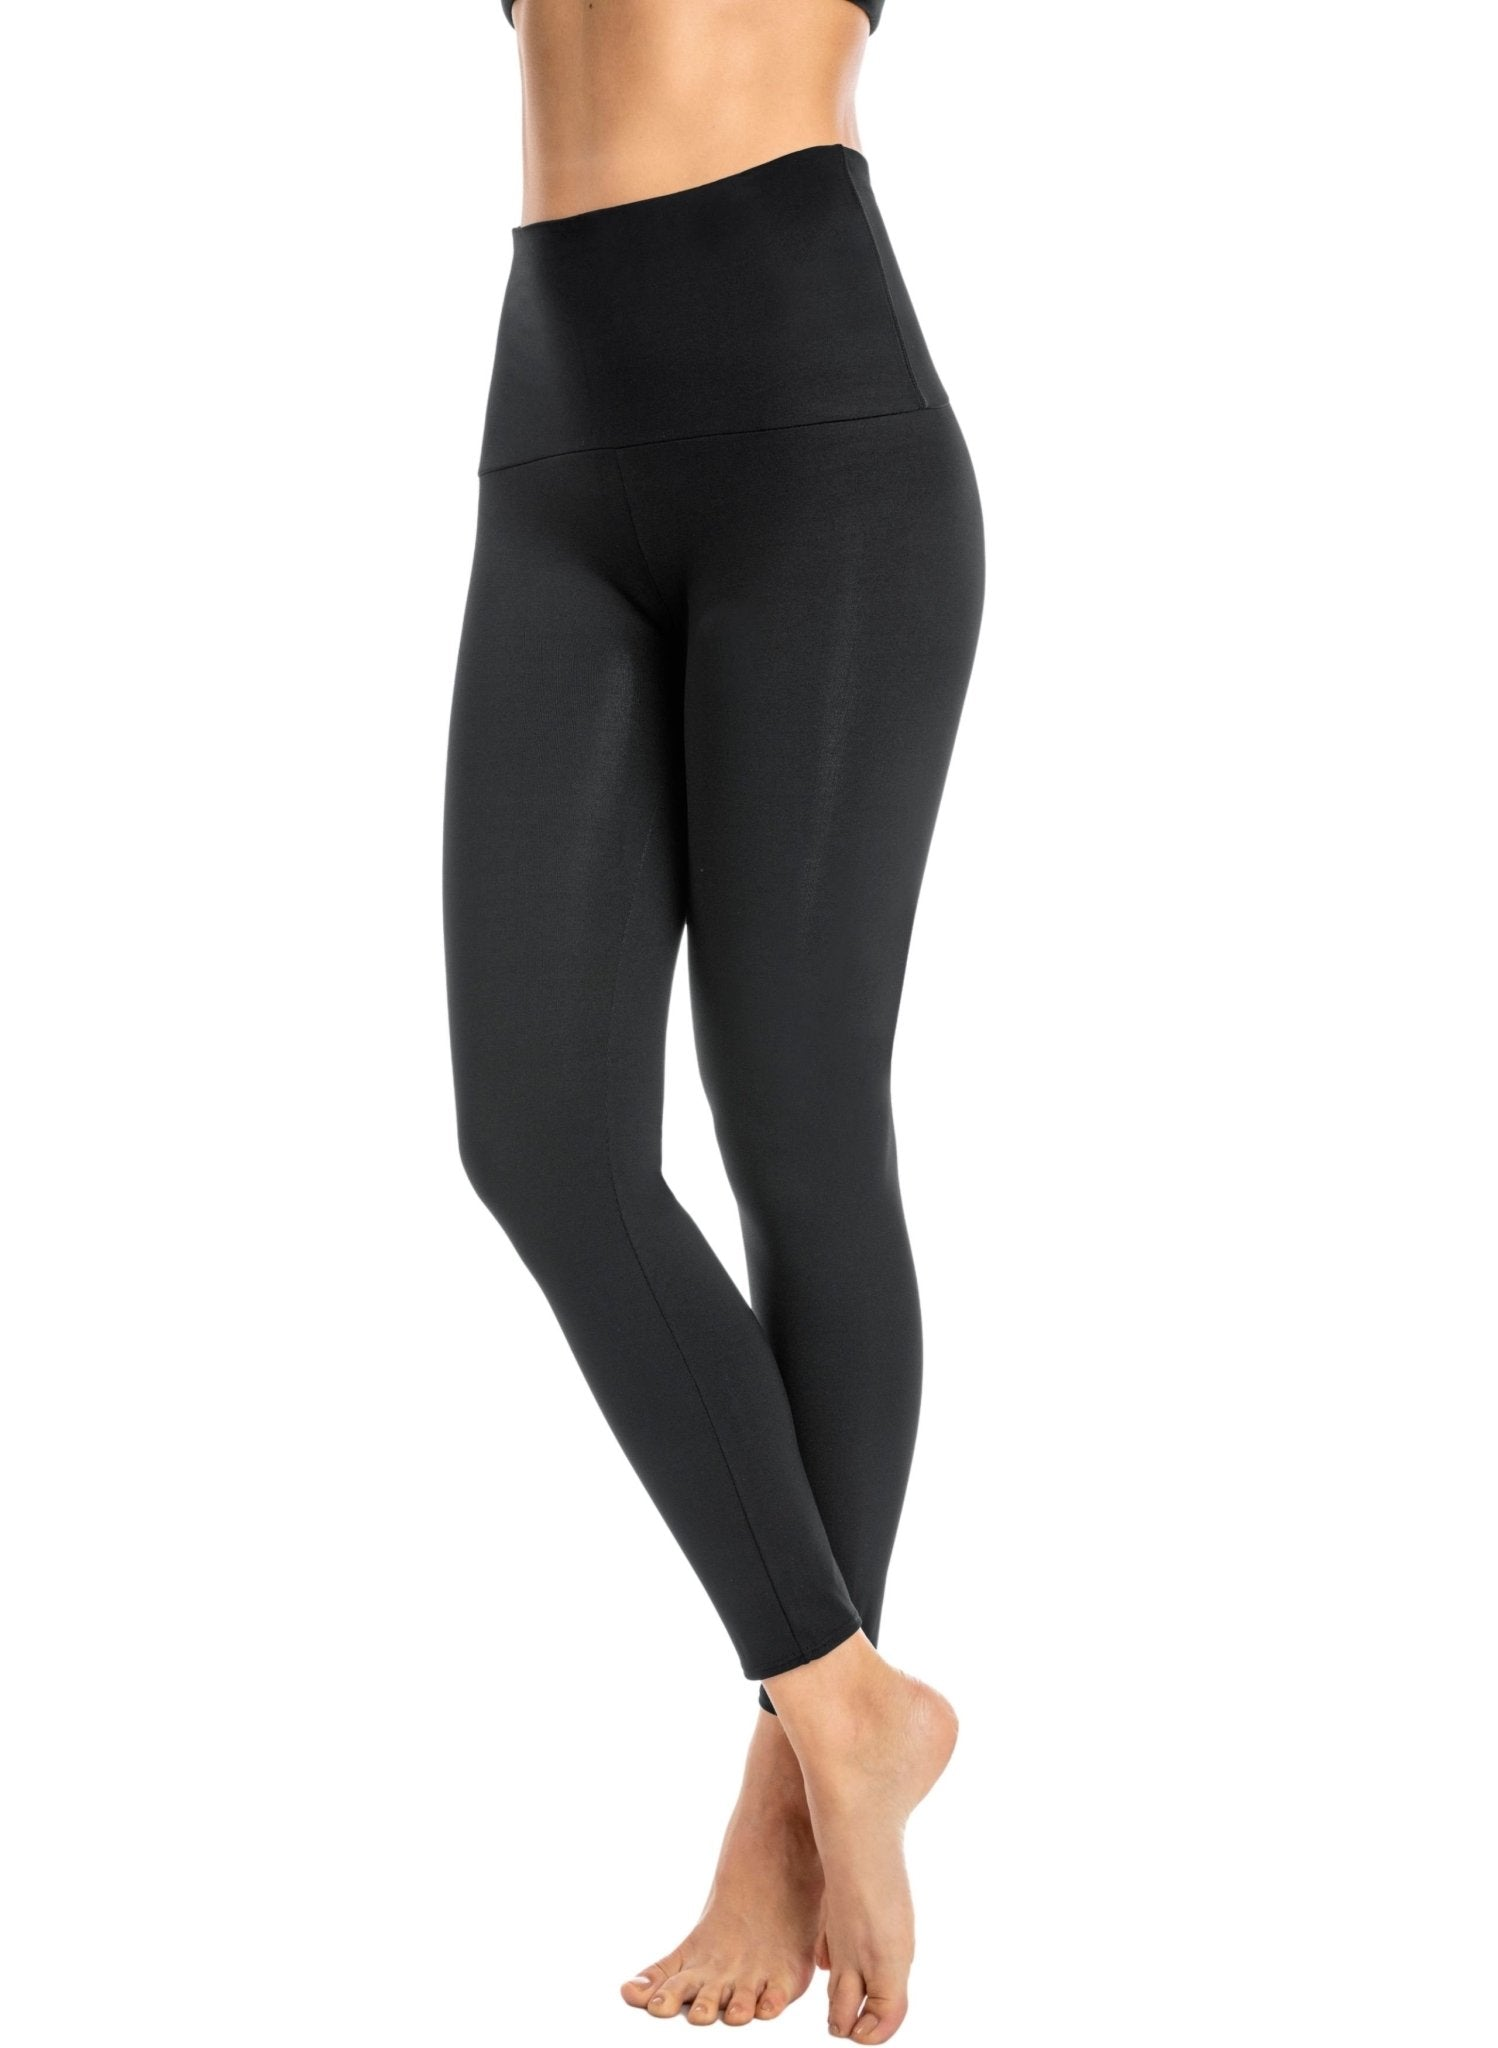 Mid-Rise Moderate Compression Butt Lift Legging - ActiveLife - Mums and Bumps